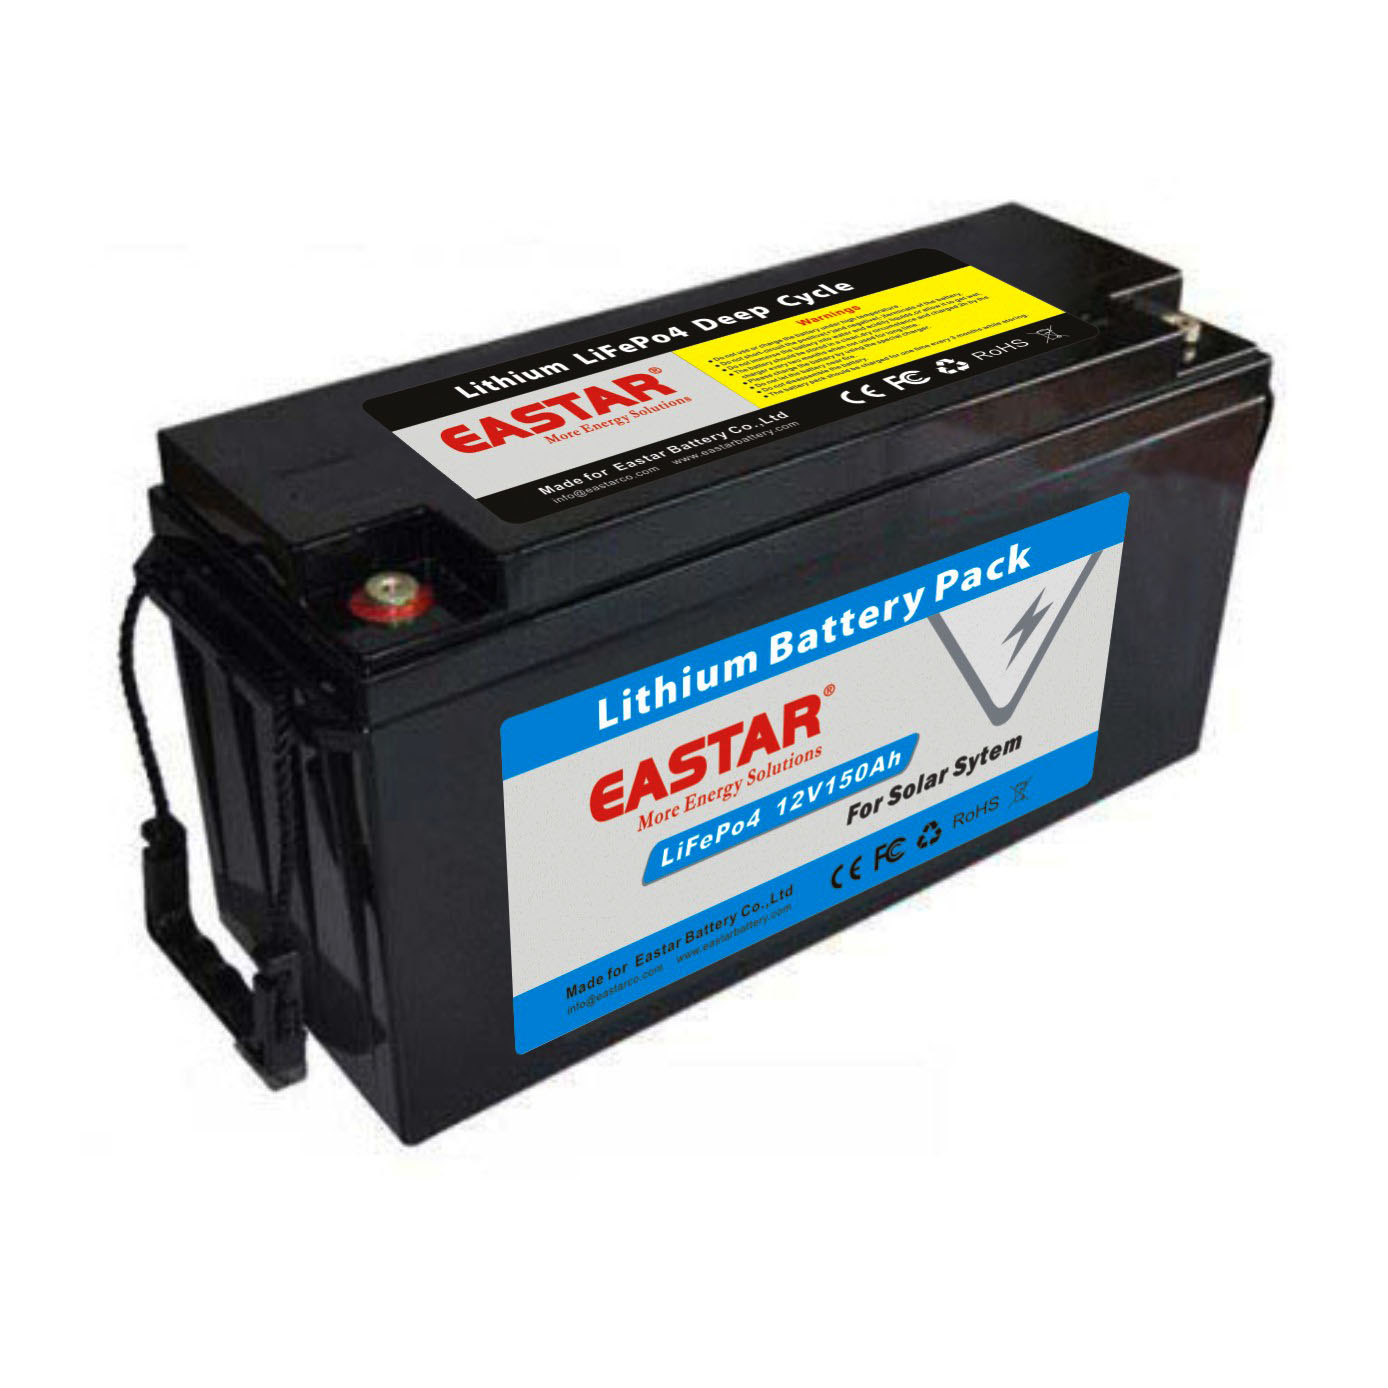 Lithium Ion Car Battery >> Lifepo4 200ah Battery 200ah 12v Lithium Ion Battery For Solar System Buy Battery 200ah 12v Lifepo4 200ah 12v 200ah Lithium Ion Battery Product On